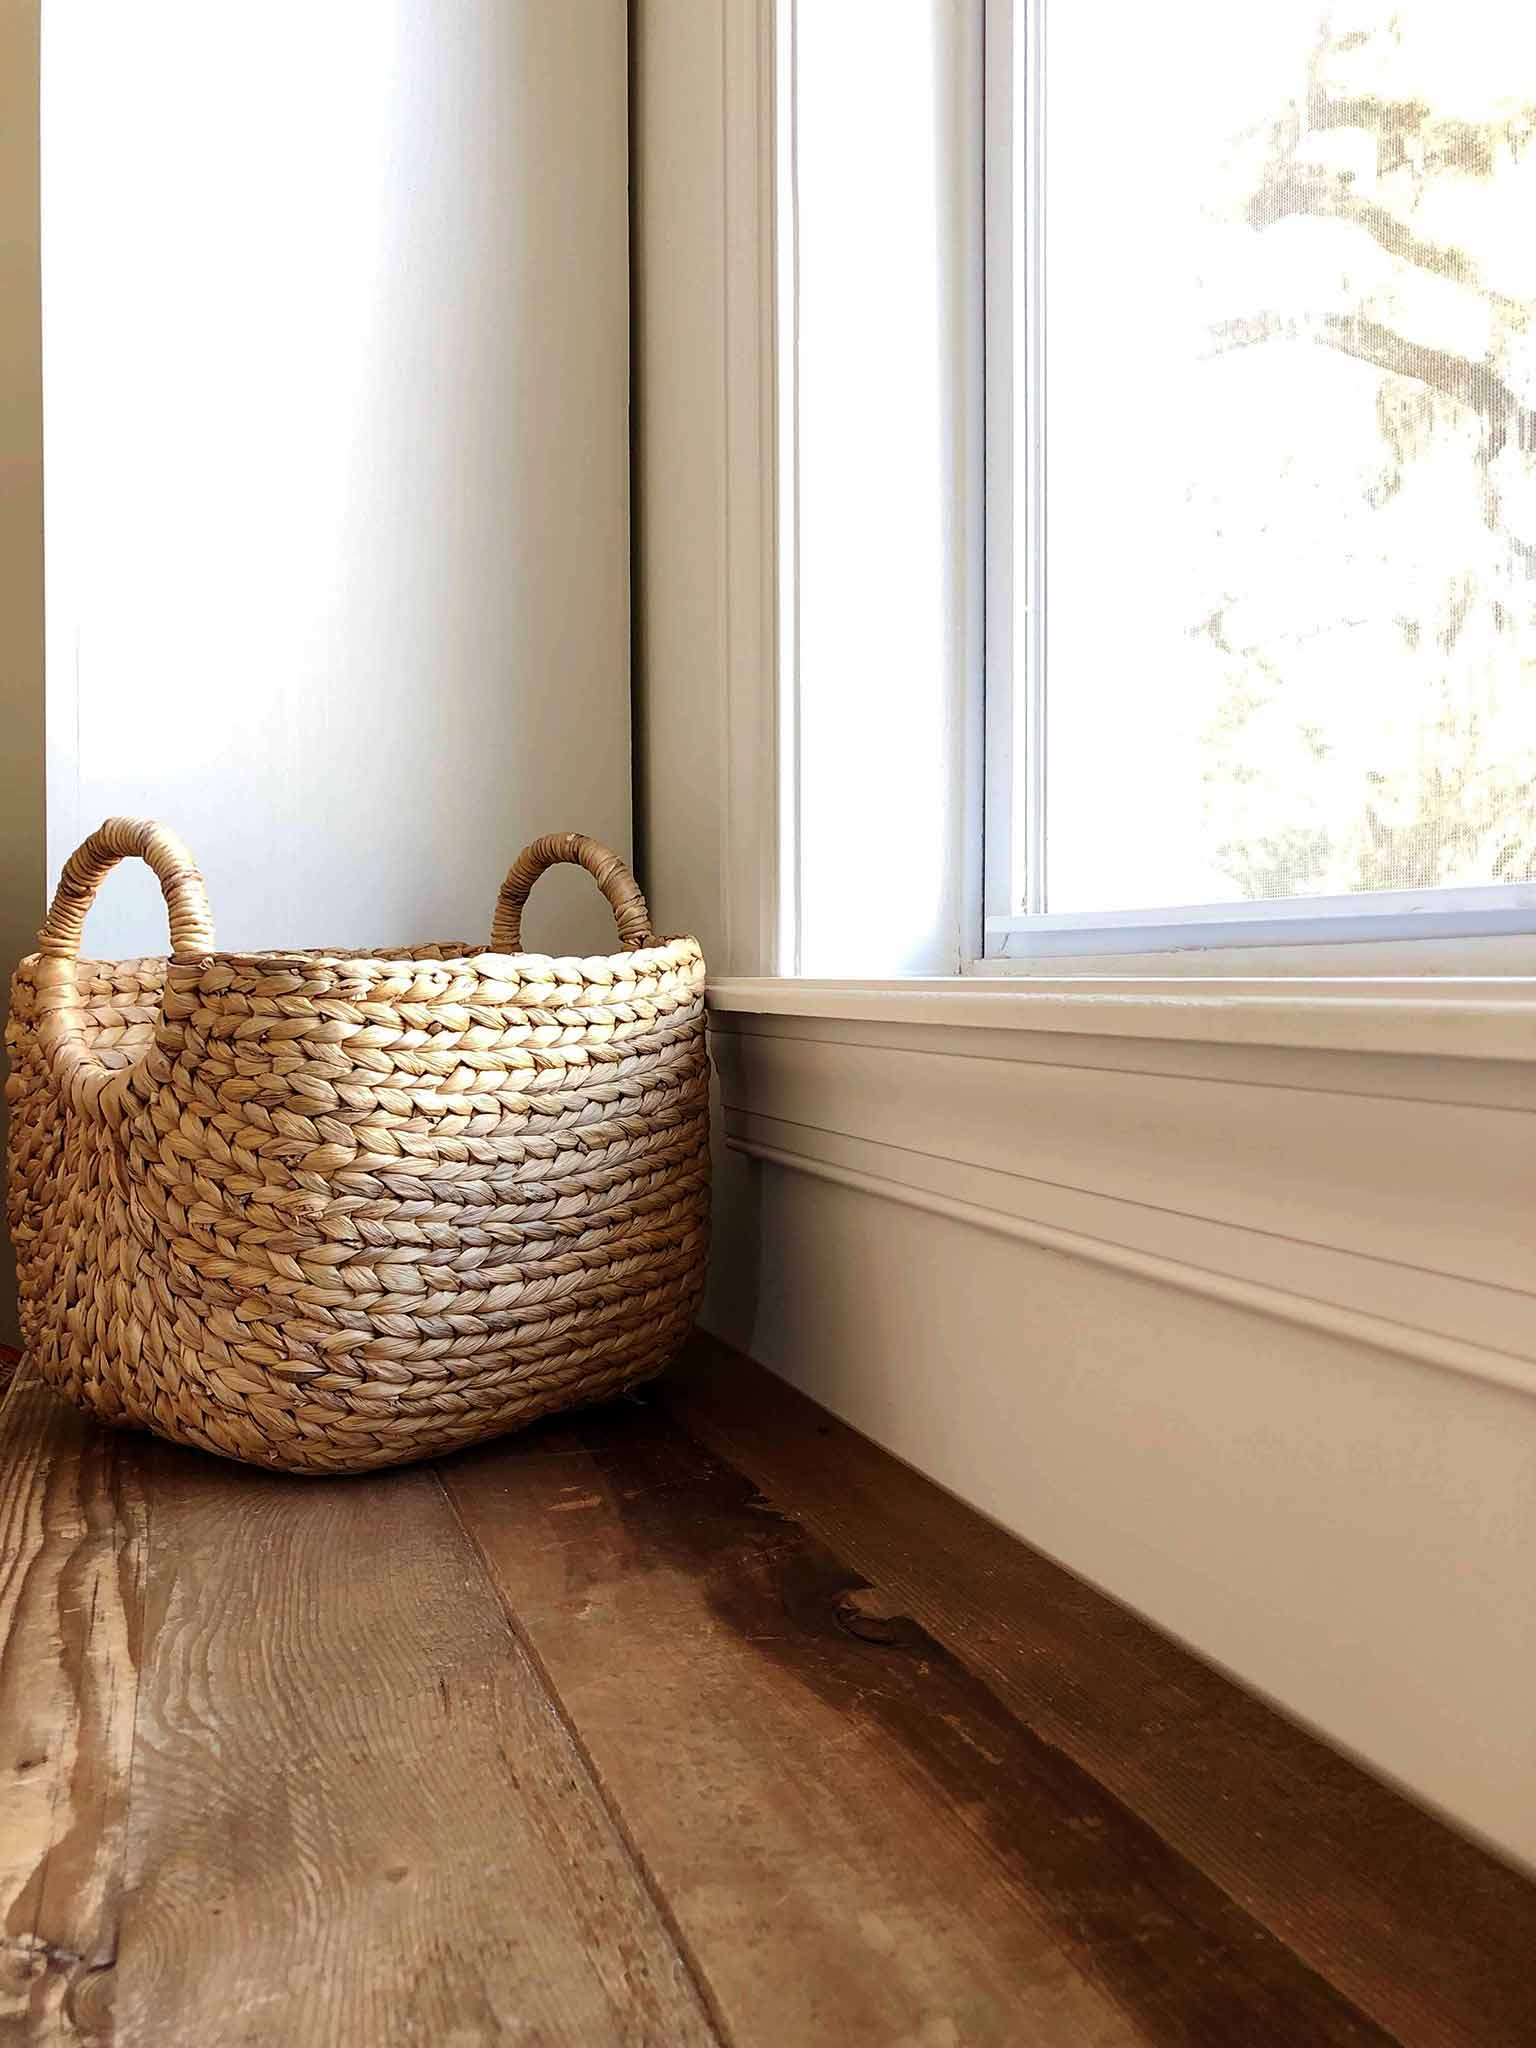 Basket on a window bench for toy storage